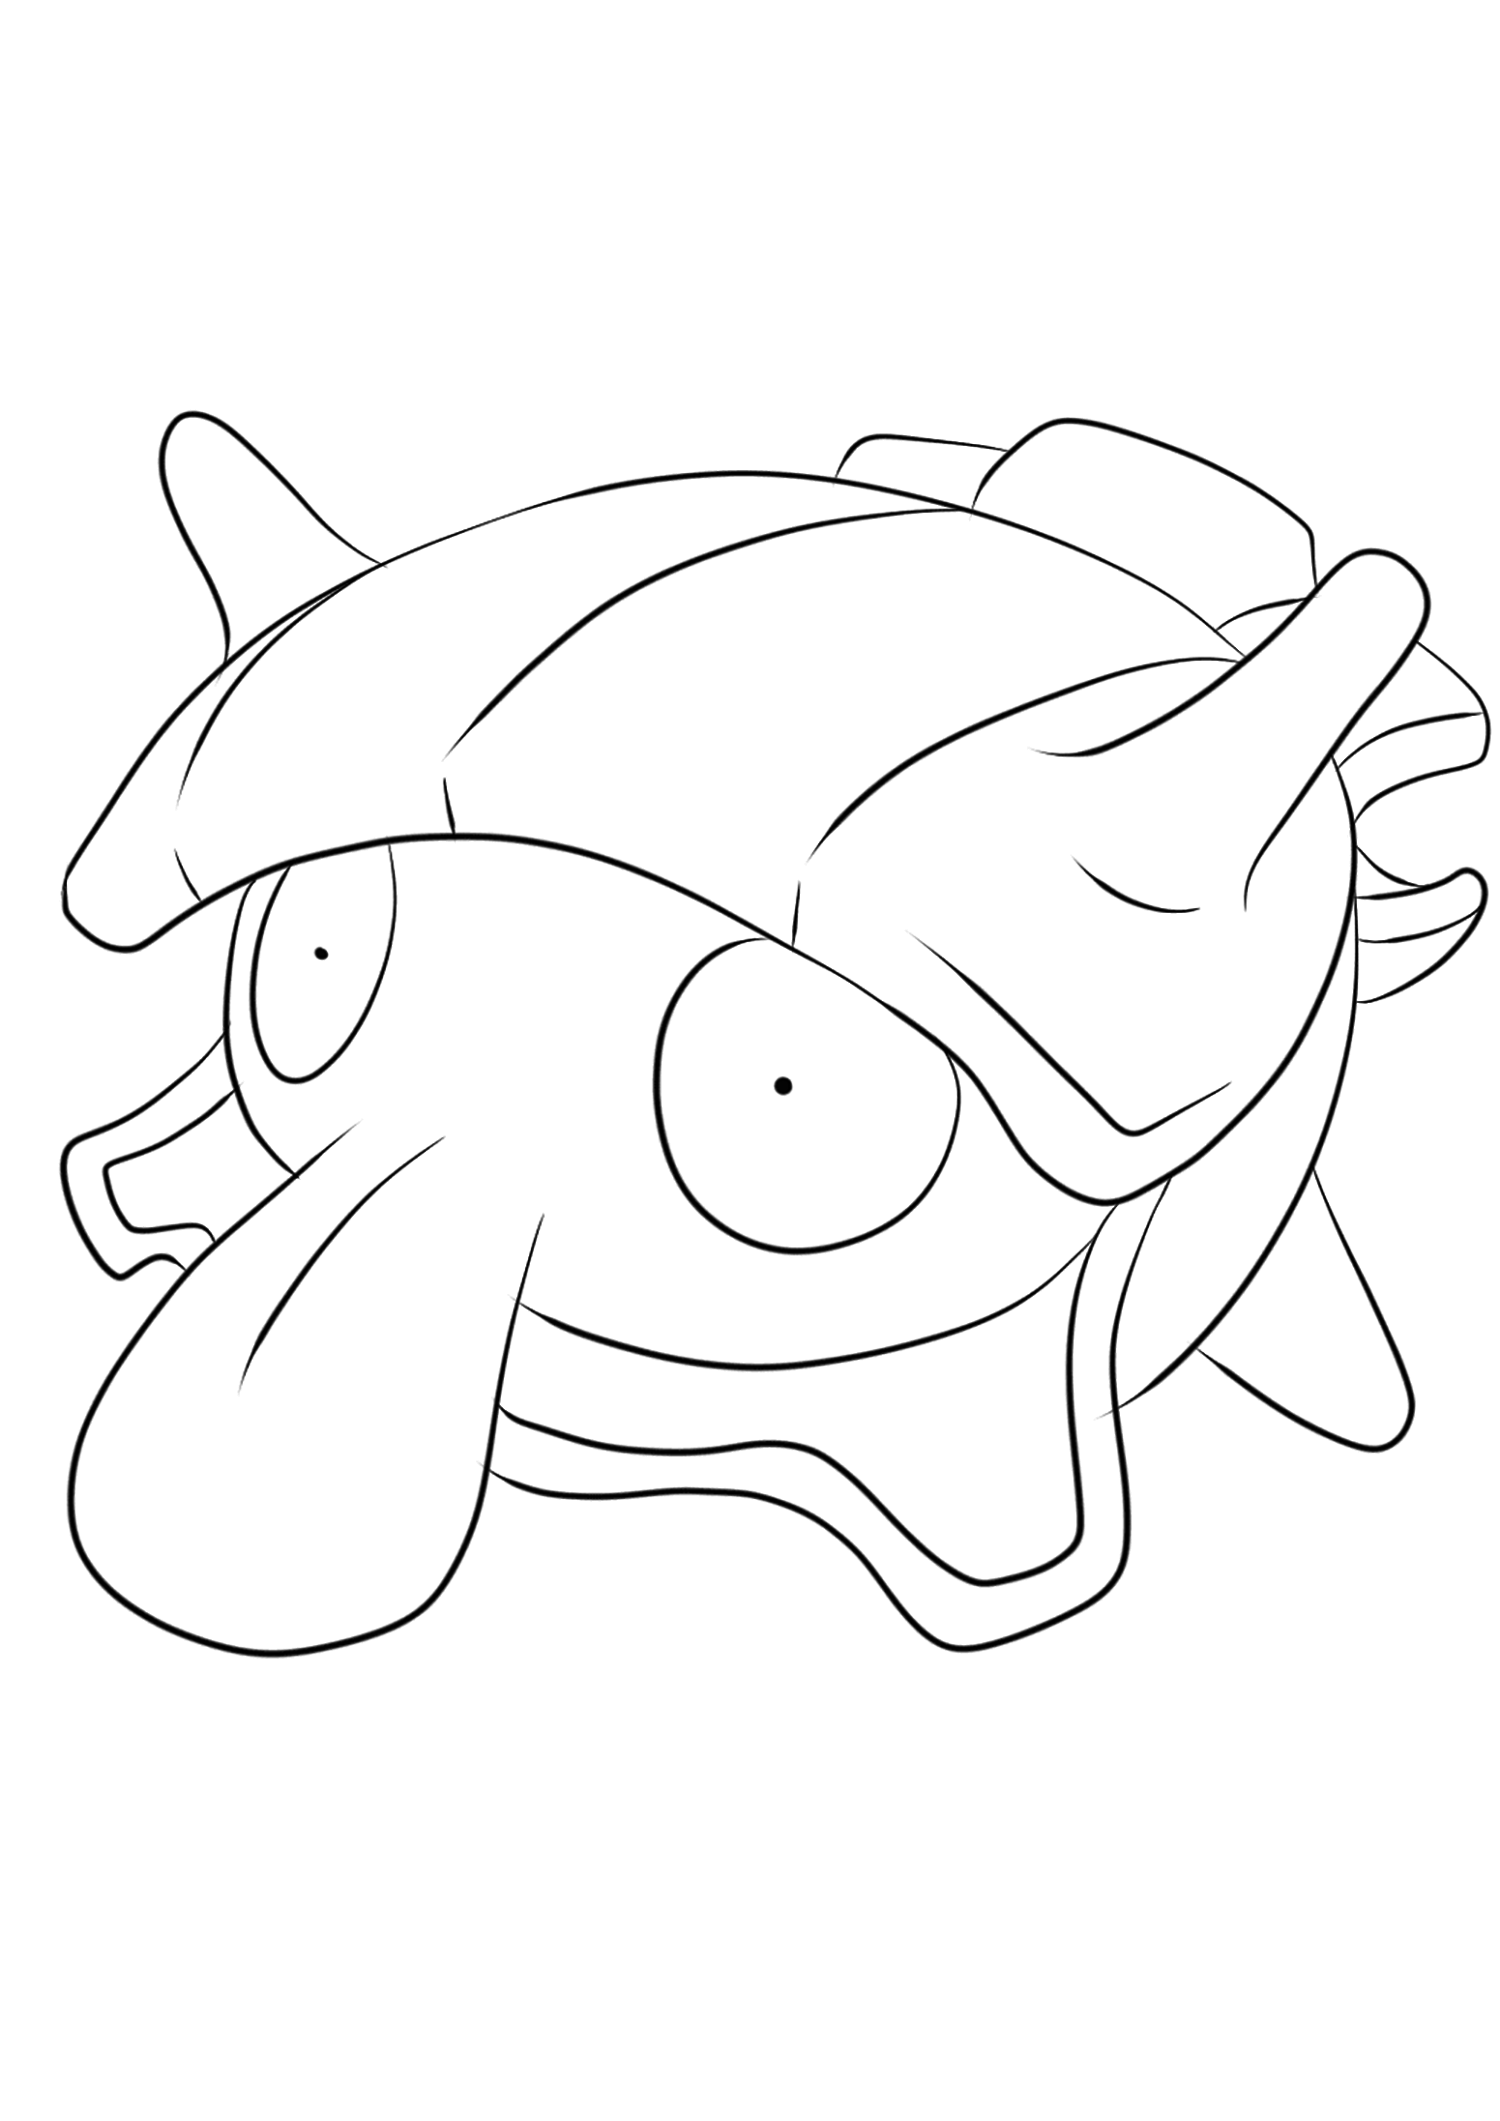 water pokemon coloring pages shellder no90 pokemon generation i all pokemon water pokemon pages coloring